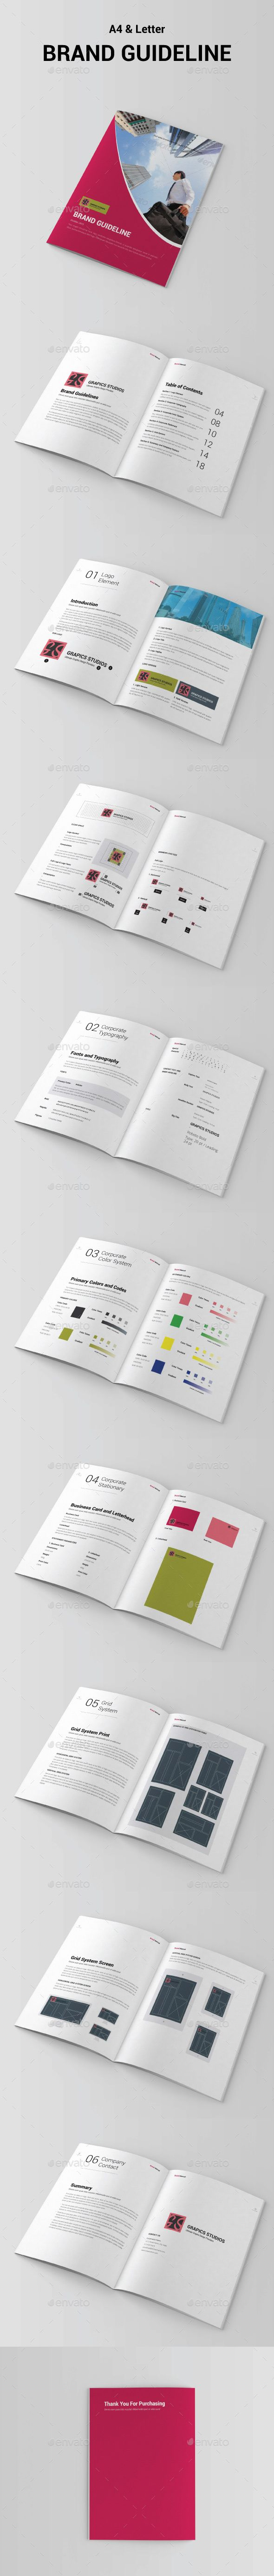 Brand Manual Brochure 20 Pages Template InDesign INDD #design Download: http://graphicriver.net/item/brand-manual-template/13167069?ref=ksioks